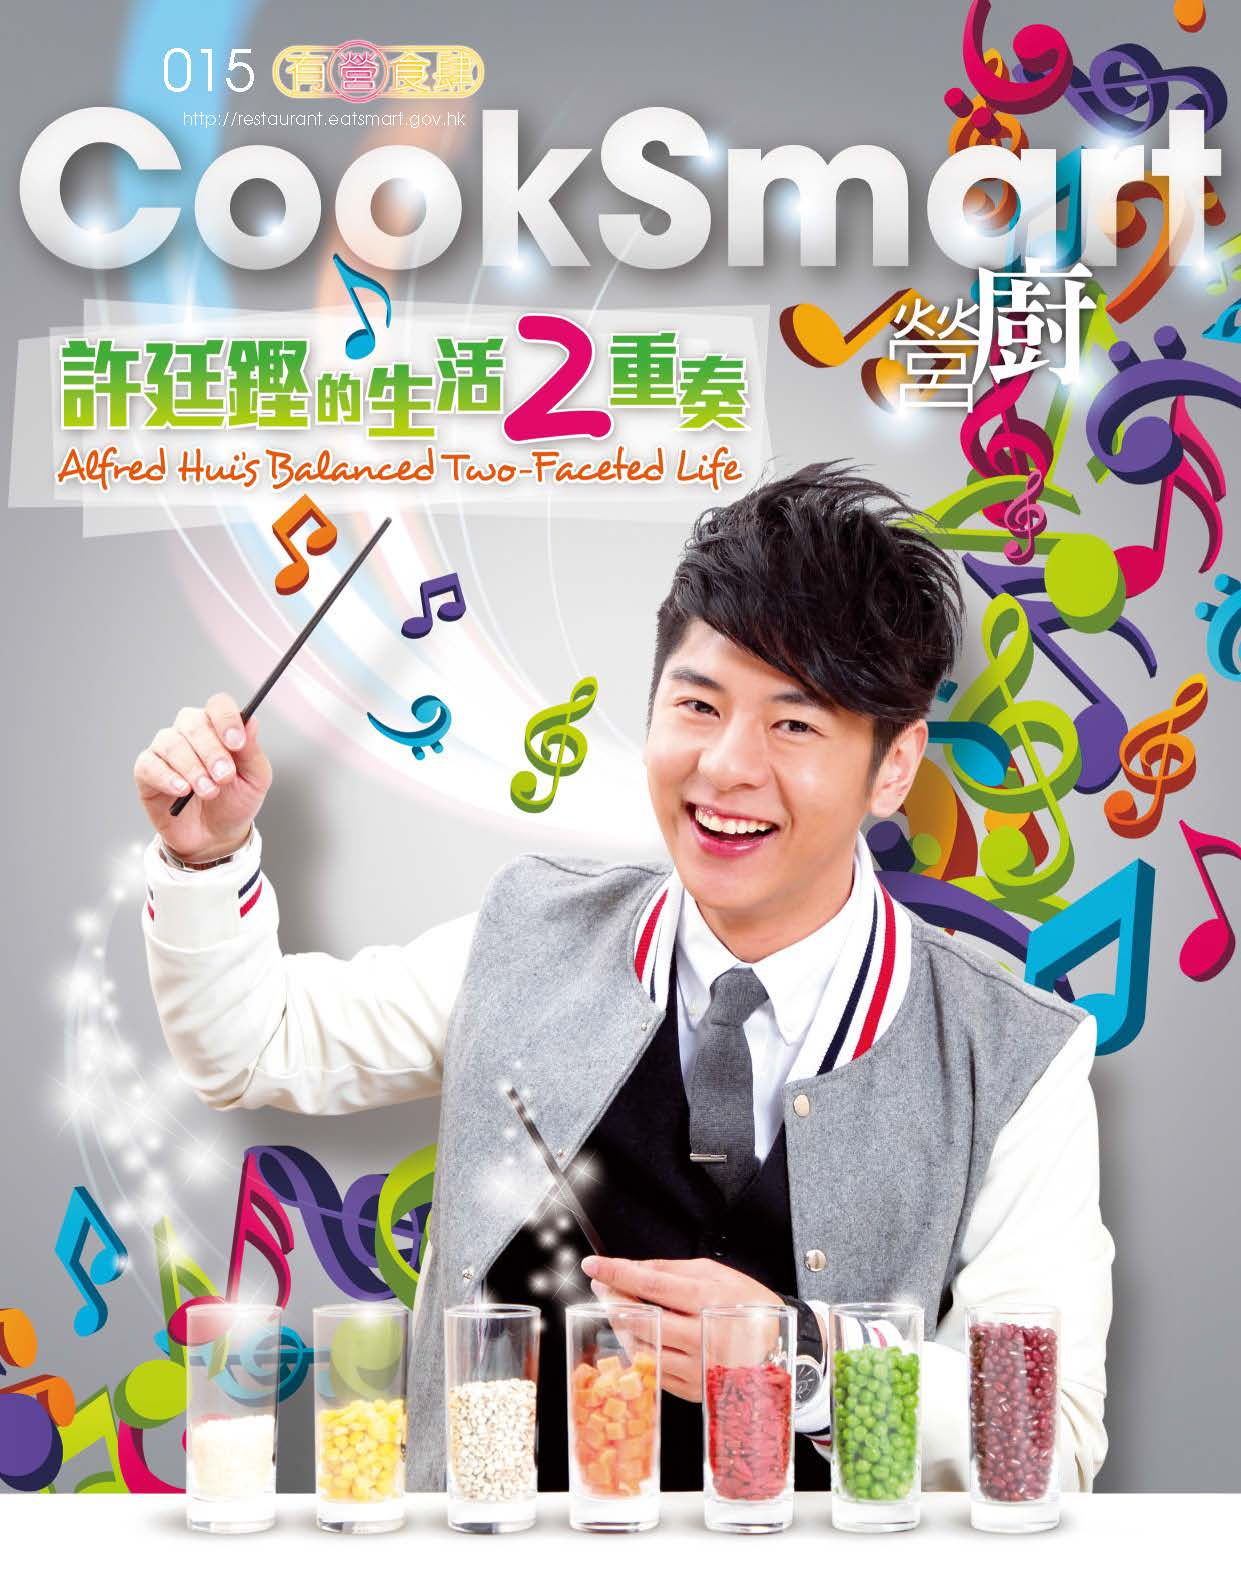 CookSmart (15th Issue) Page 1